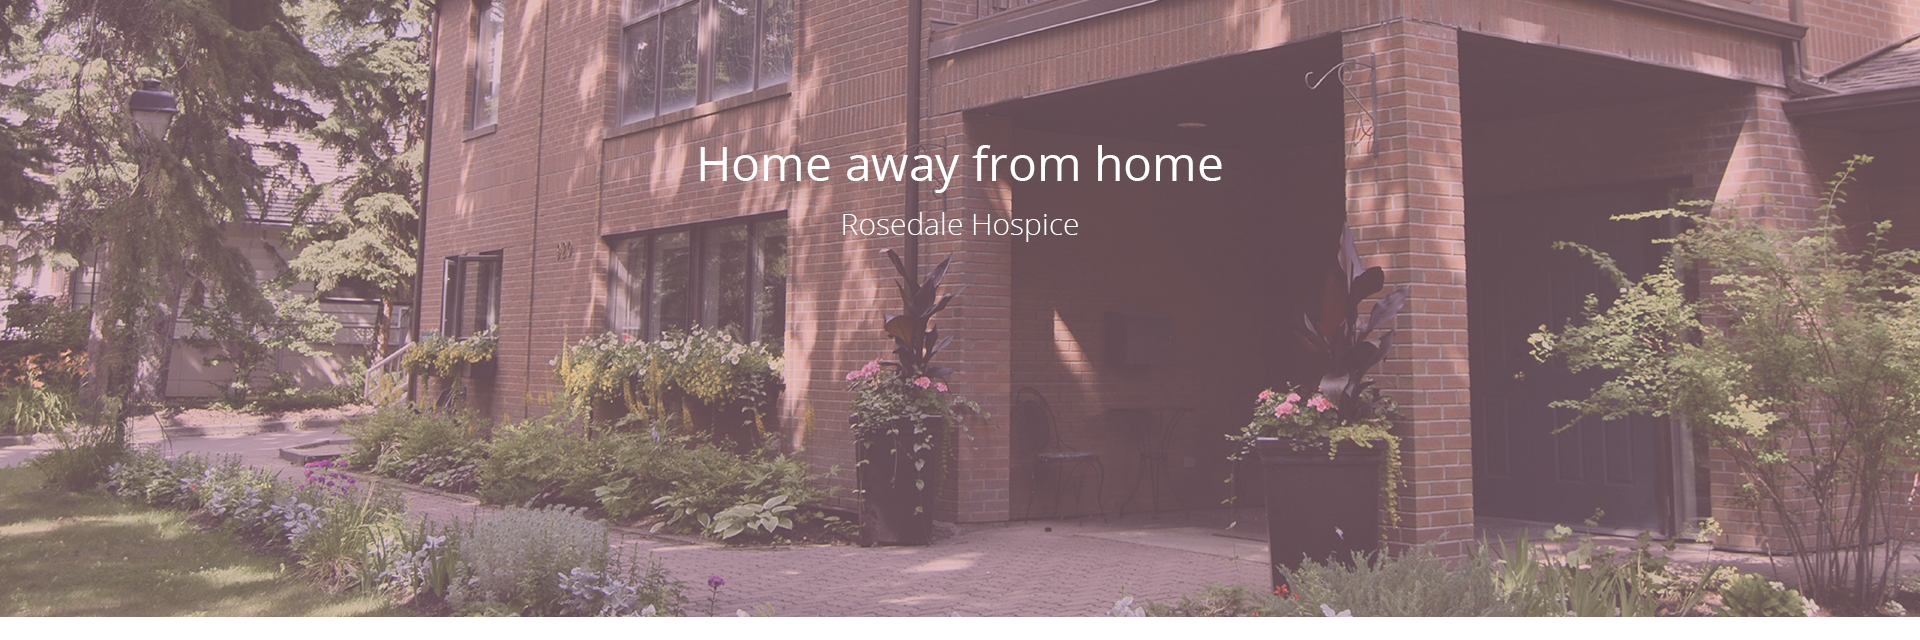 Rosedale Hospice